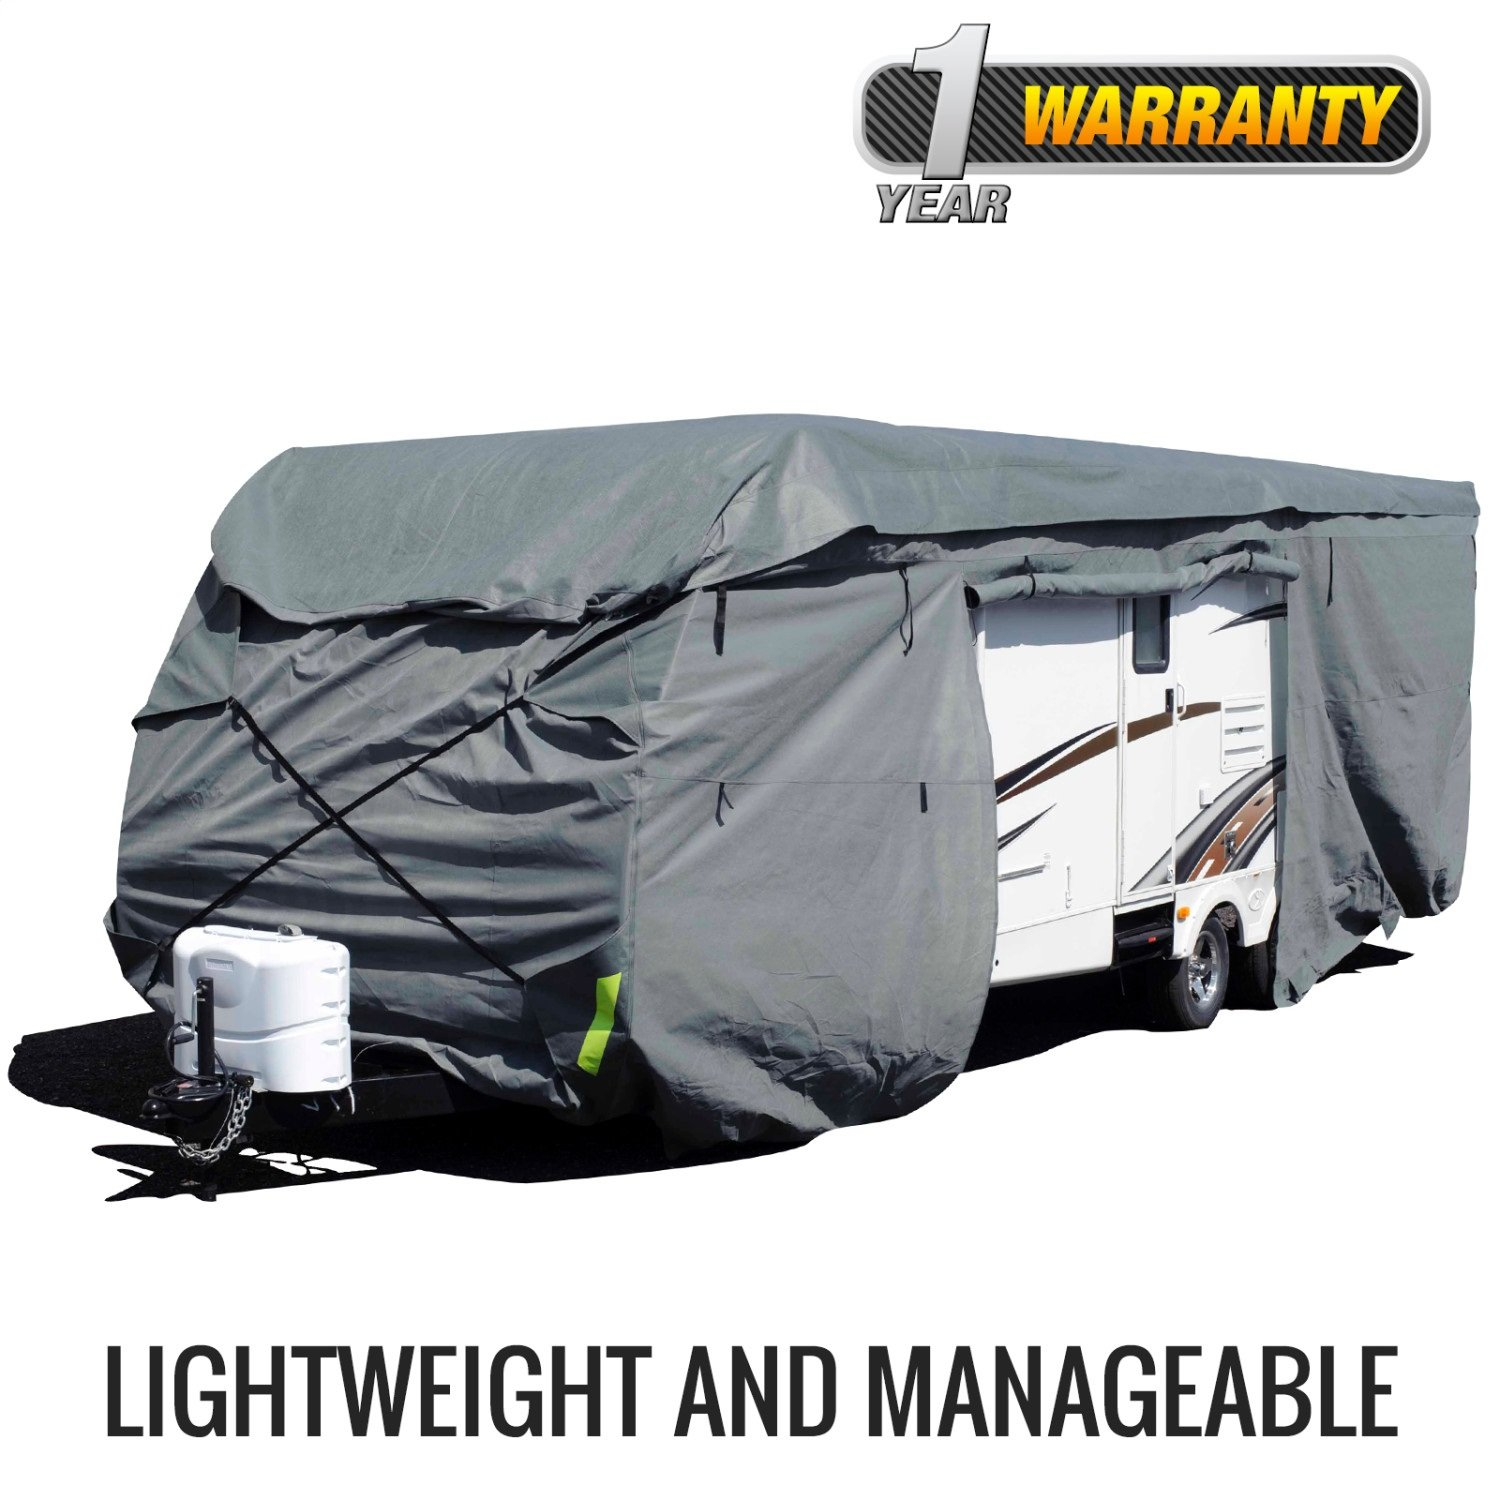 Budge Toy Hauler RV Covers Fits Toy Hauler RVs up to 21' Long (Gray, Polyproplyene) RVRB-50